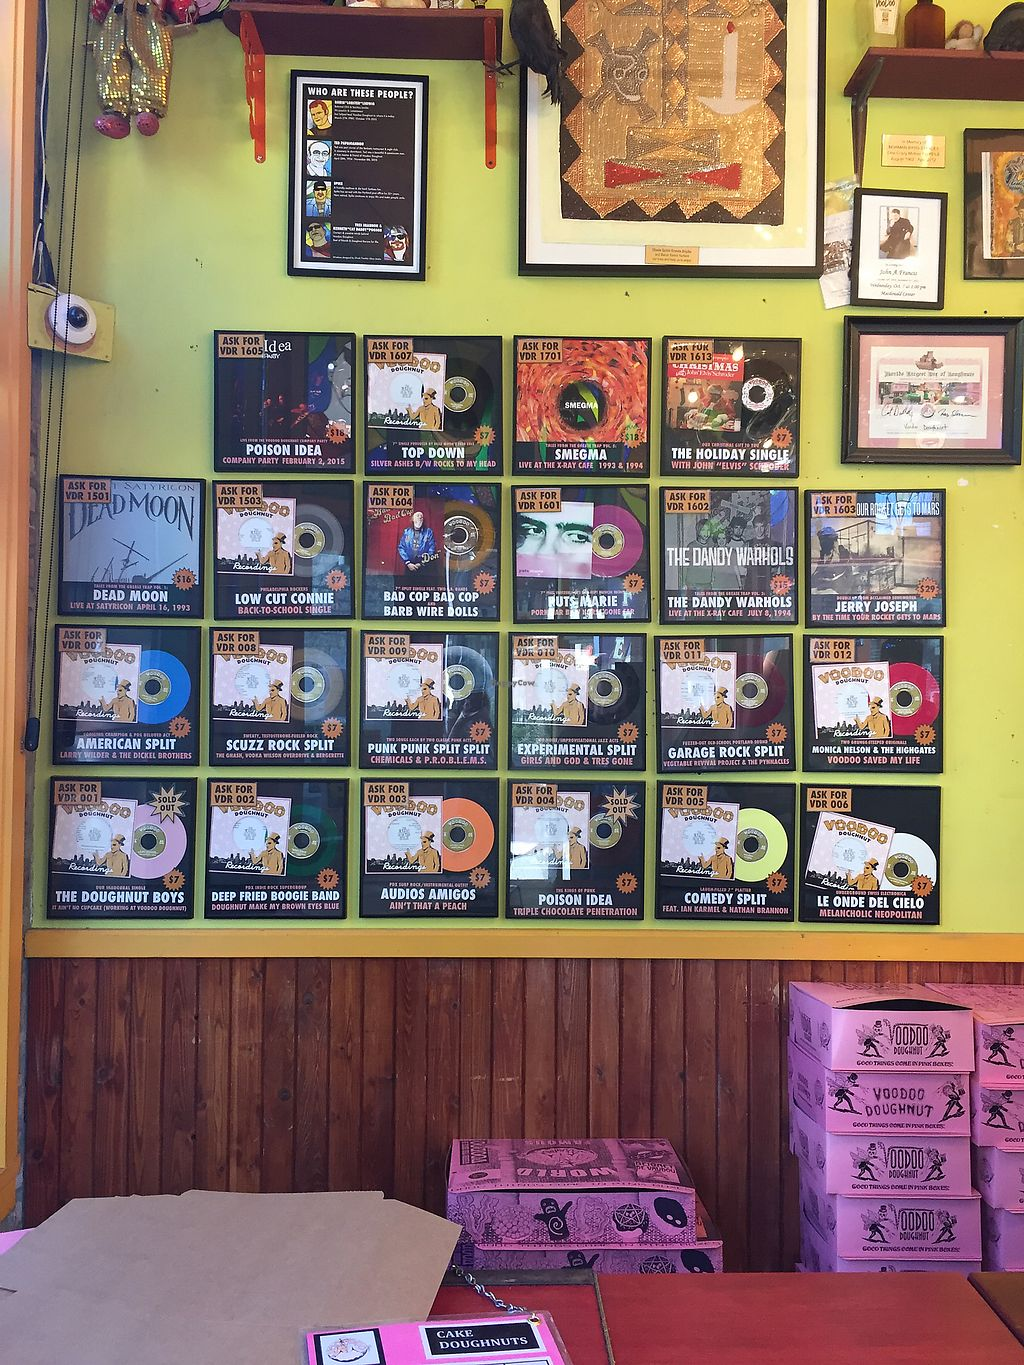 """Photo of Voodoo Doughnut  by <a href=""""/members/profile/TheVeganNarwhal"""">TheVeganNarwhal</a> <br/>Inside decor <br/> February 12, 2018  - <a href='/contact/abuse/image/33103/358230'>Report</a>"""